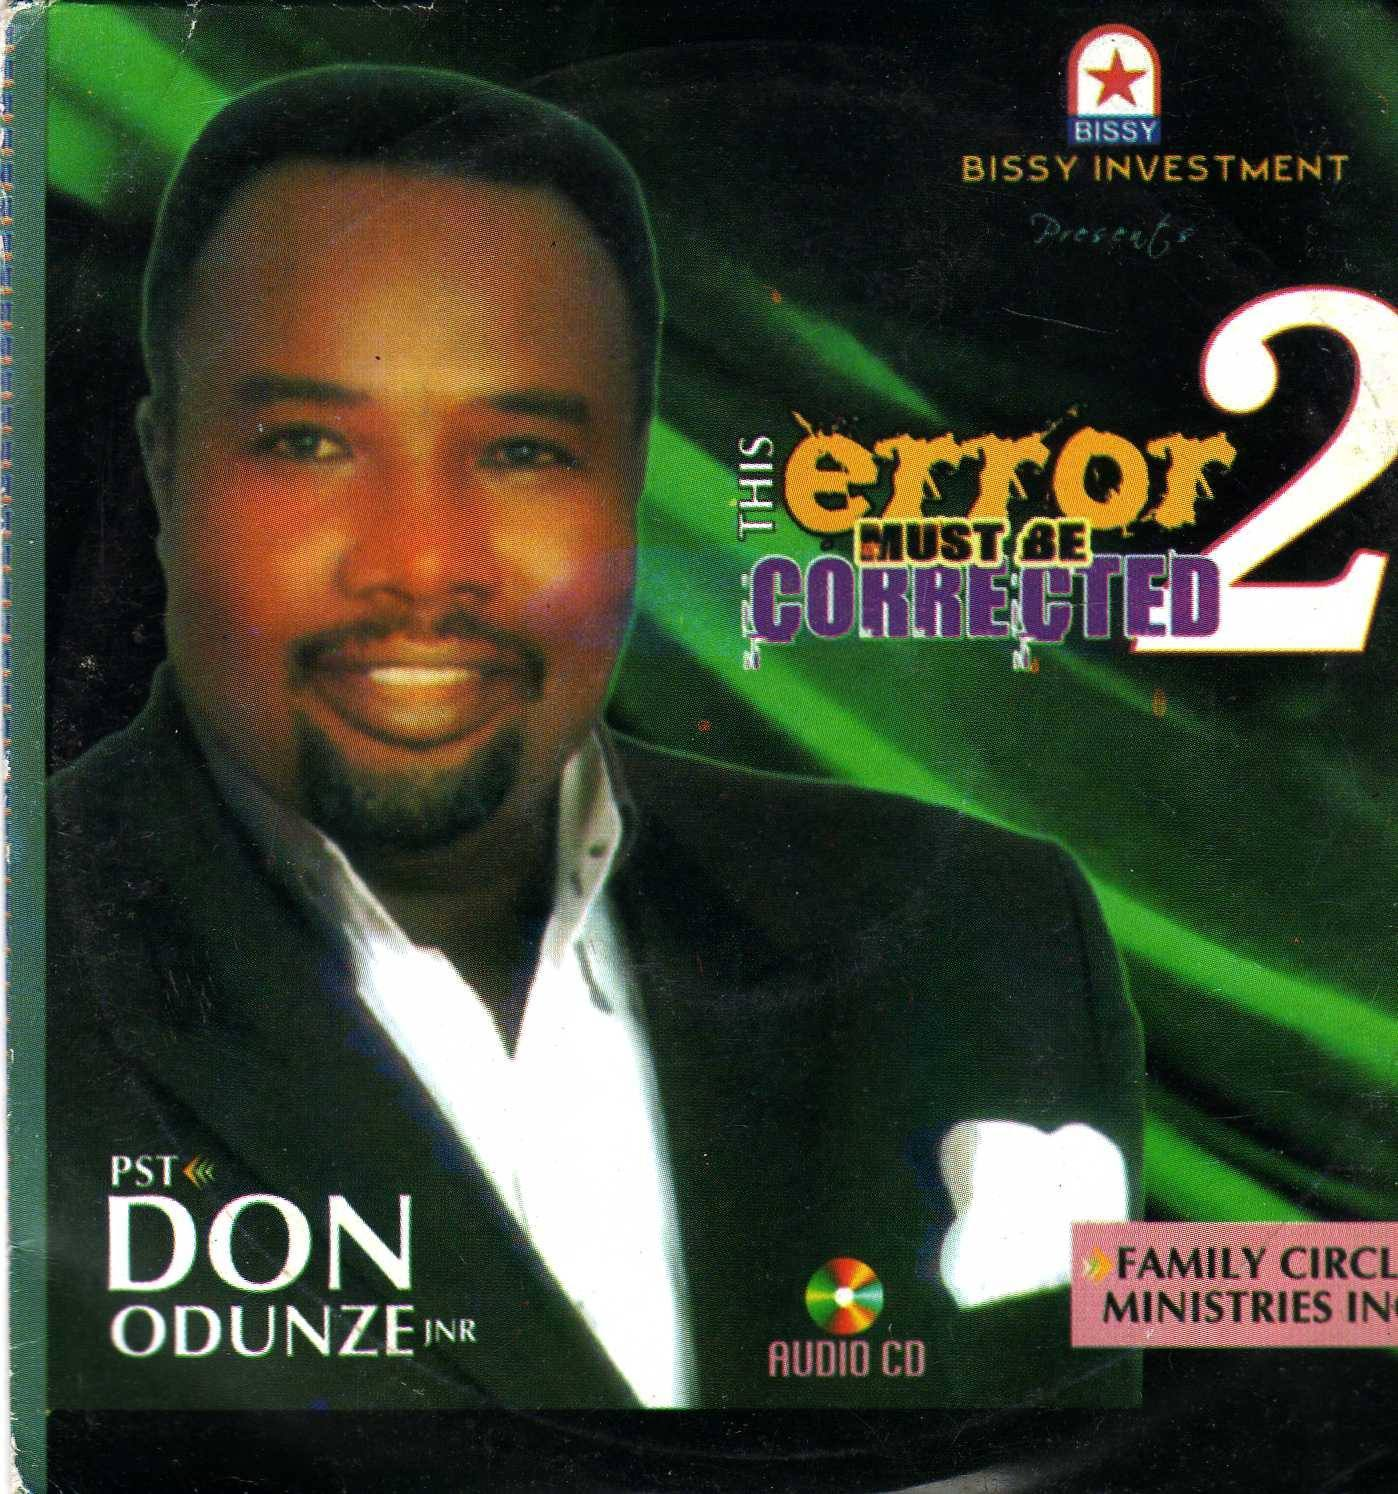 CD - Don Odunze - The Error Must Be Corrected Pt 2 - CD